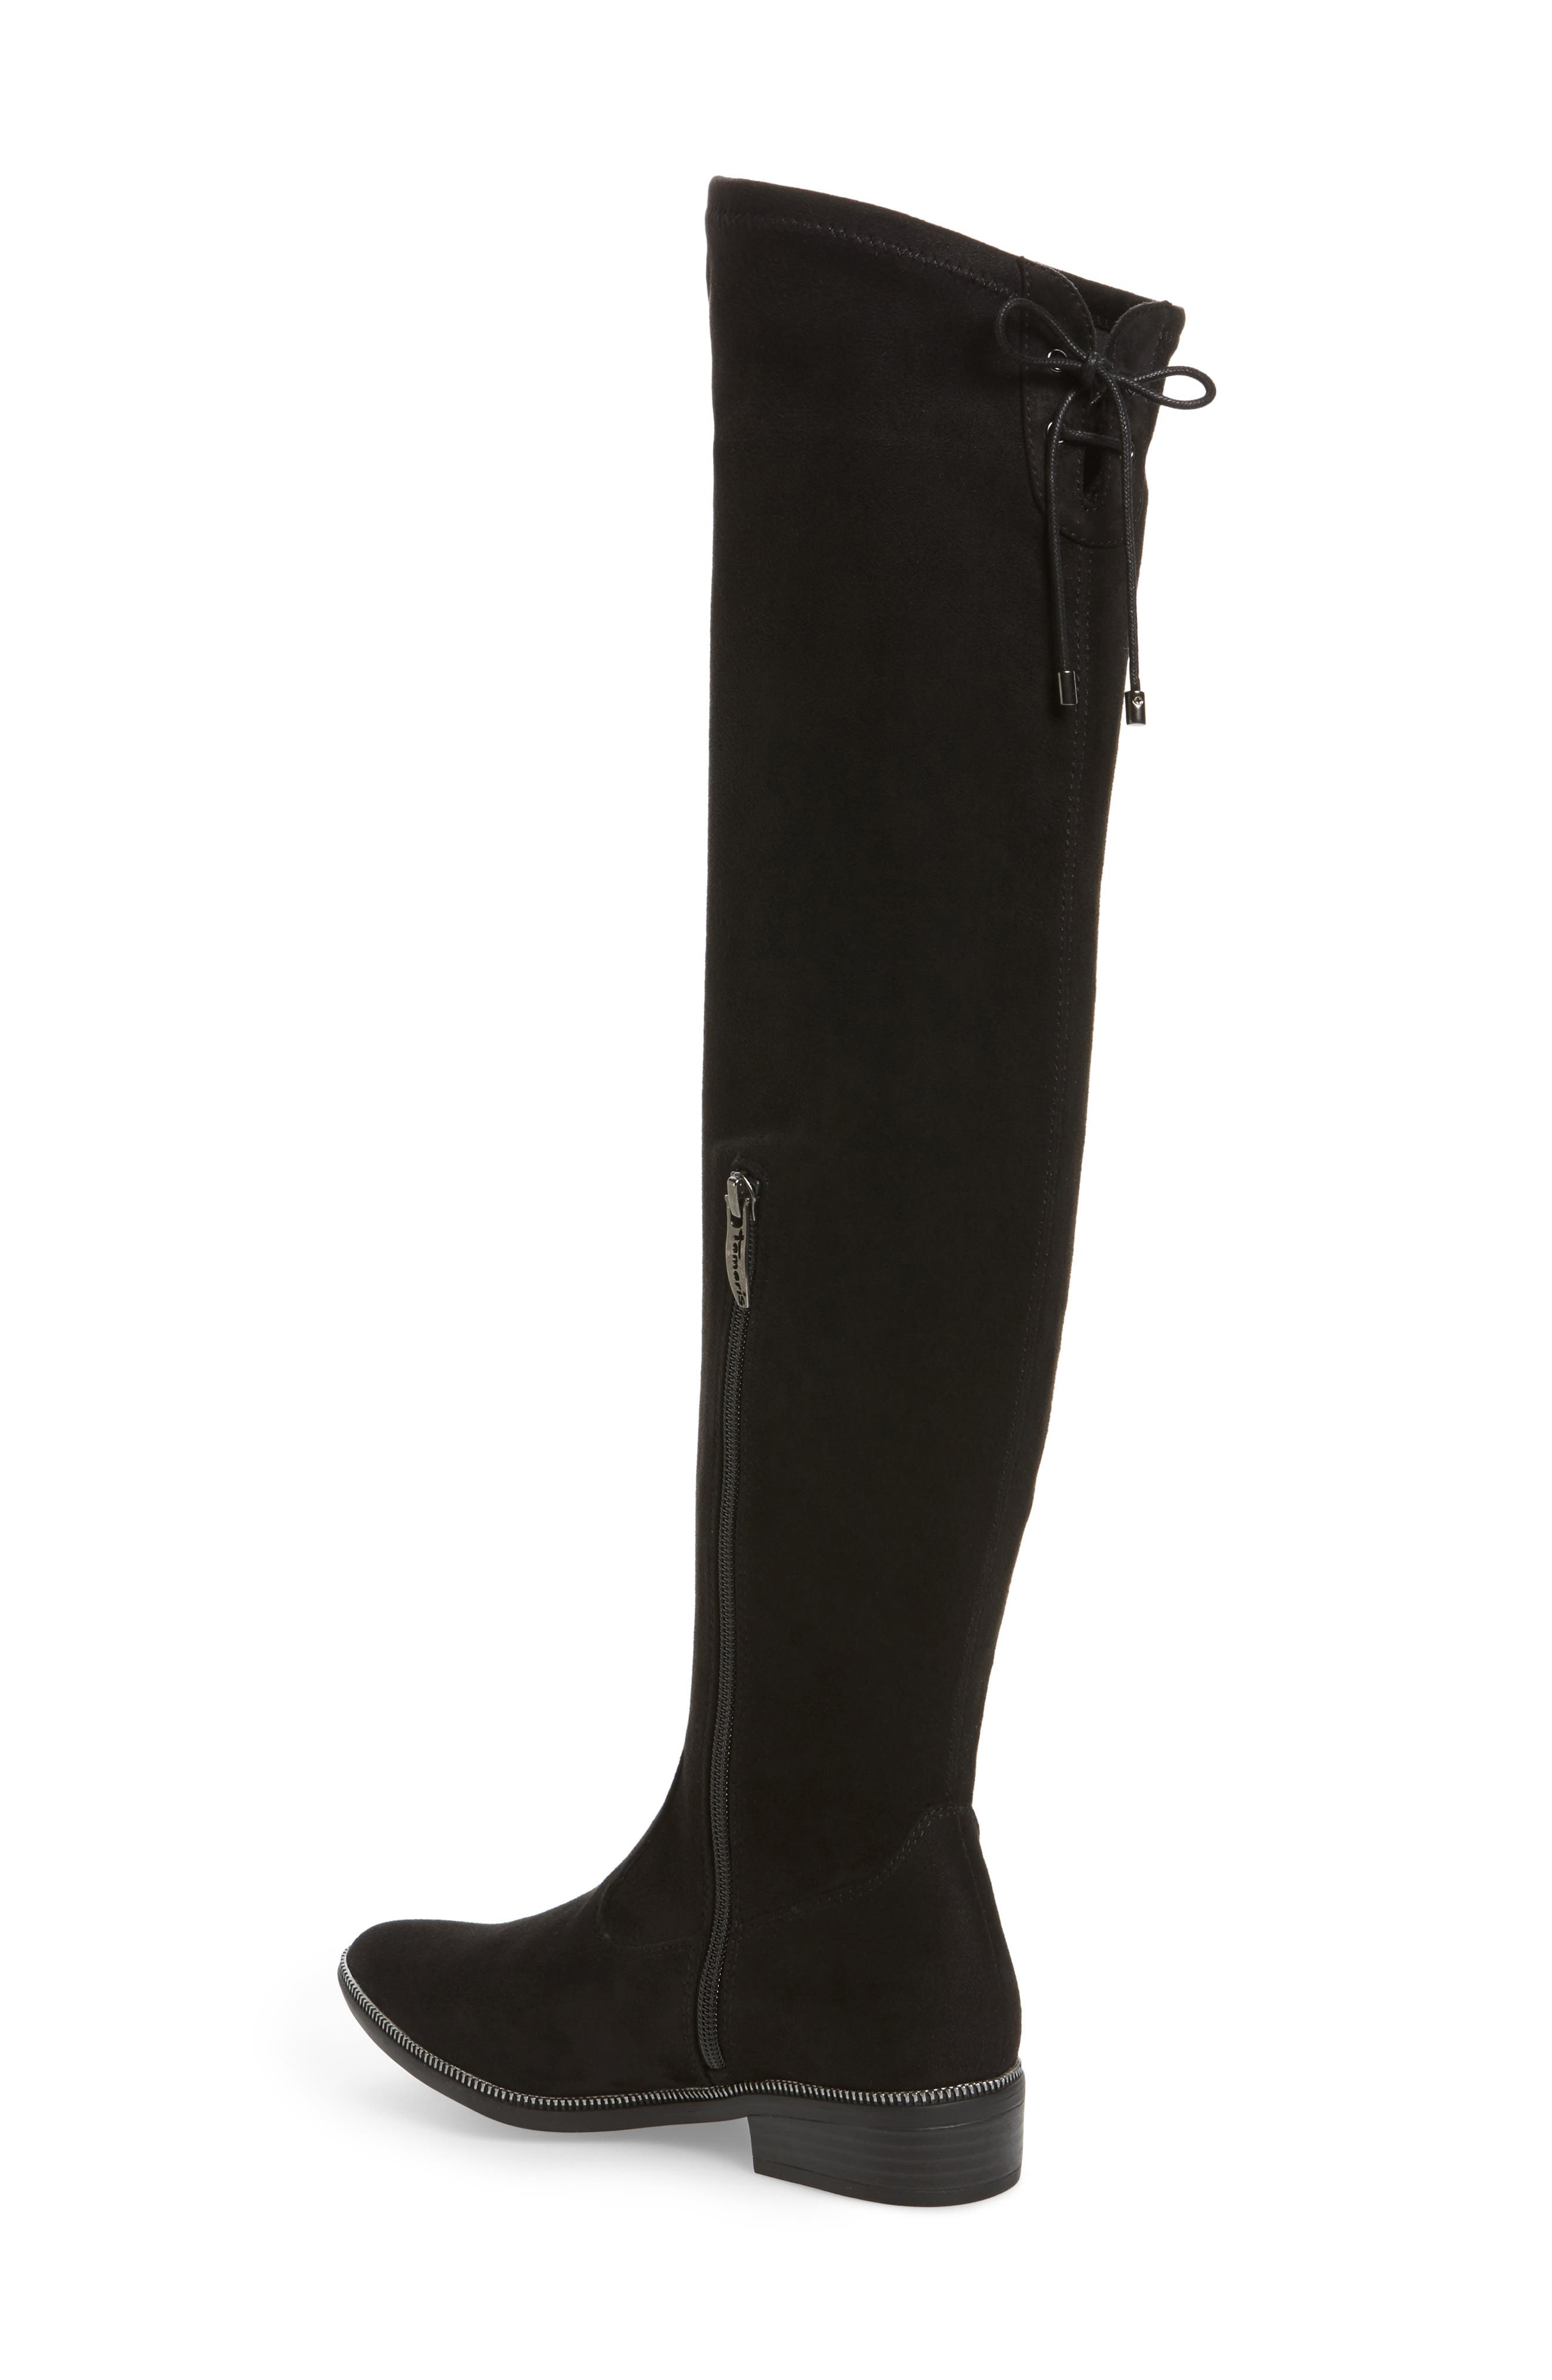 Phanie Over the Knee Stretch Boot,                             Alternate thumbnail 2, color,                             001